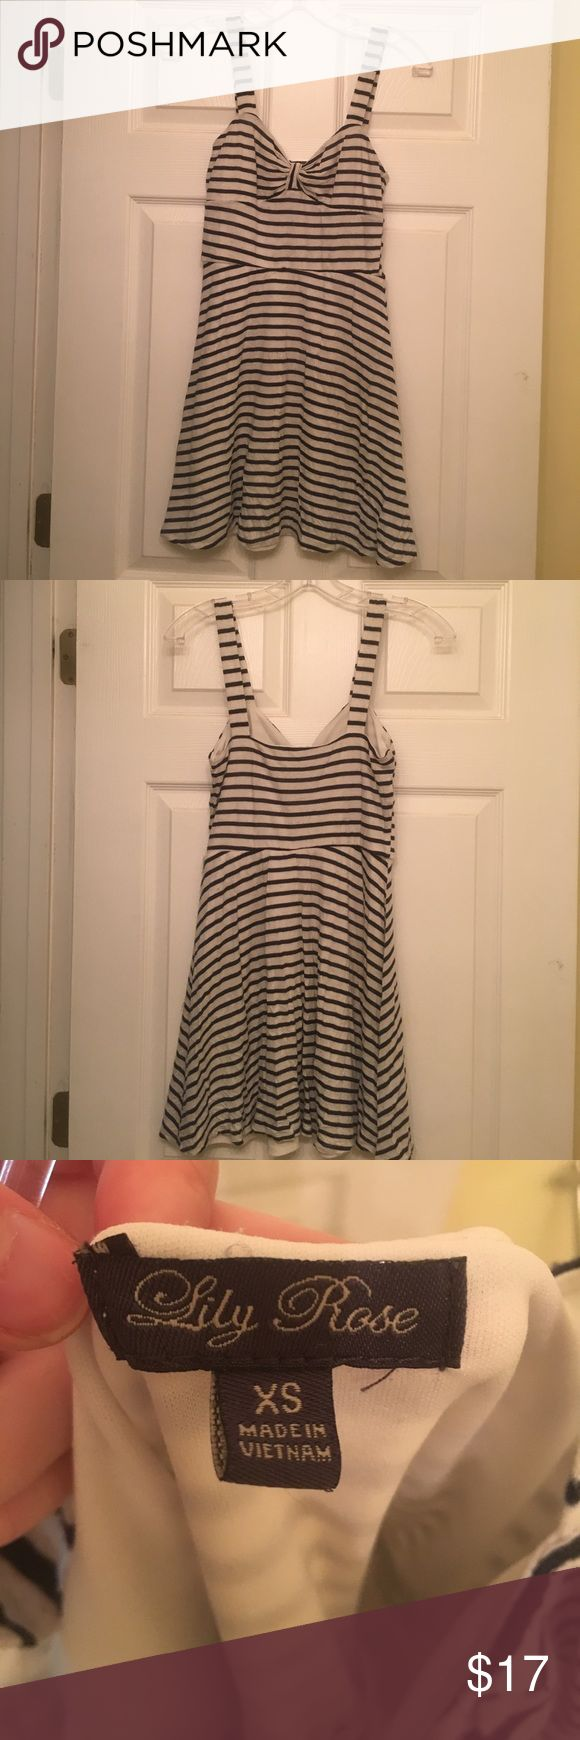 1/2 OFF Nautical Summer Dresa This cute nautical summer dress is perfect for the summer season! It's in great shape and has only been worn a few times! Very breezy, easy to wear. Perfect for going out and about and wanting to look cute. Lily Rose Dresses Mini